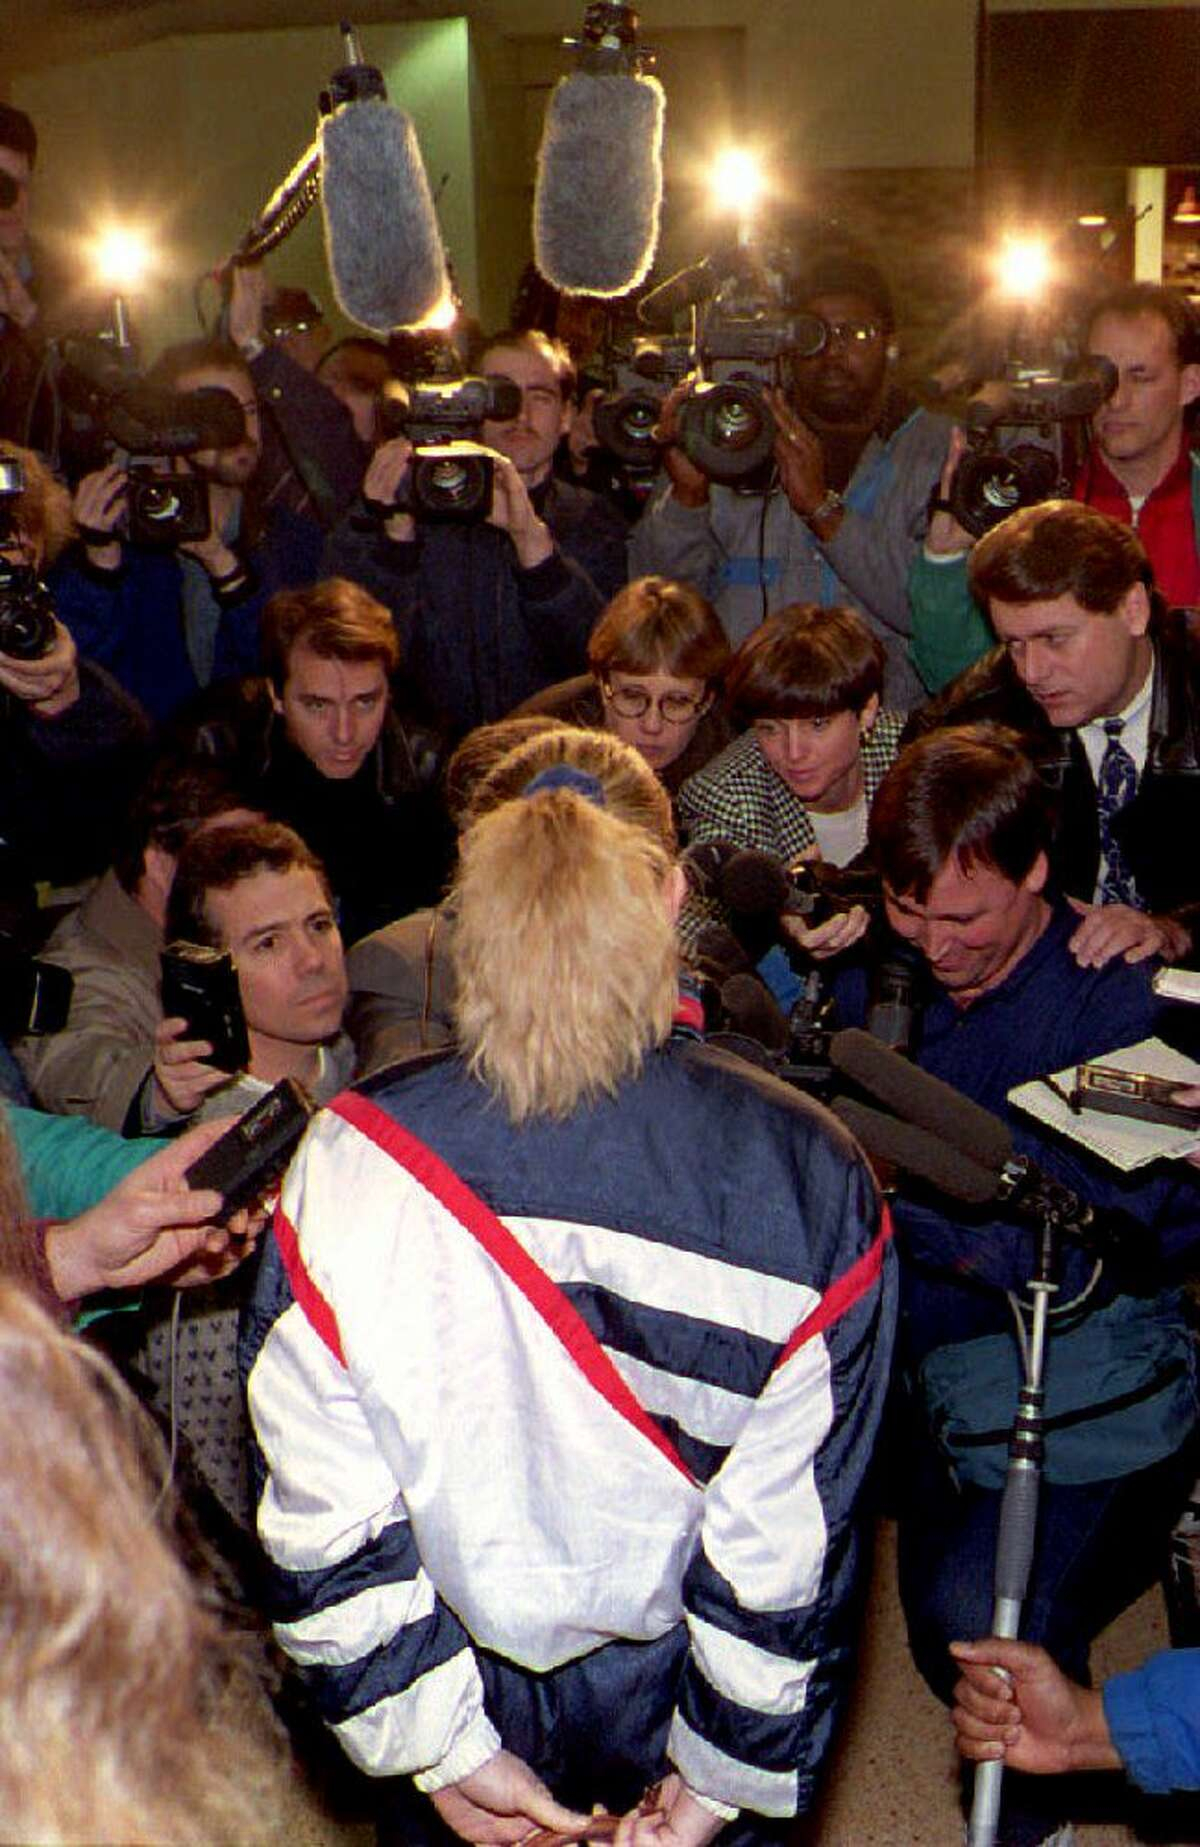 The media attention began after the Jan. 6, 2004, attack on Kerrigan. Here Tonya Harding faces reporters on Jan. 20, 1994, in Portland.